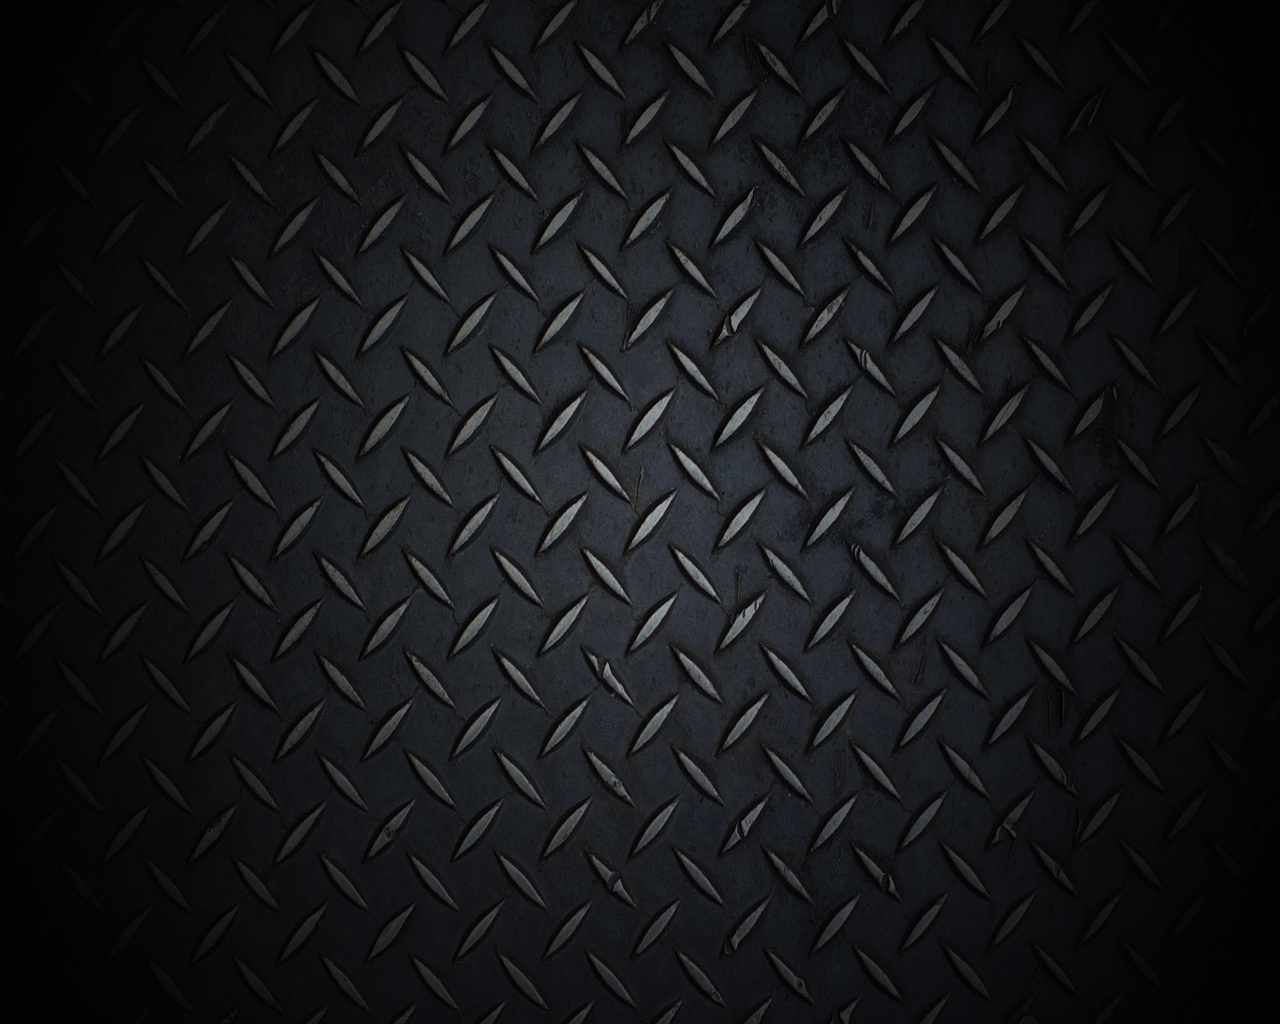 iphone 5 diamond plate wallpaper images